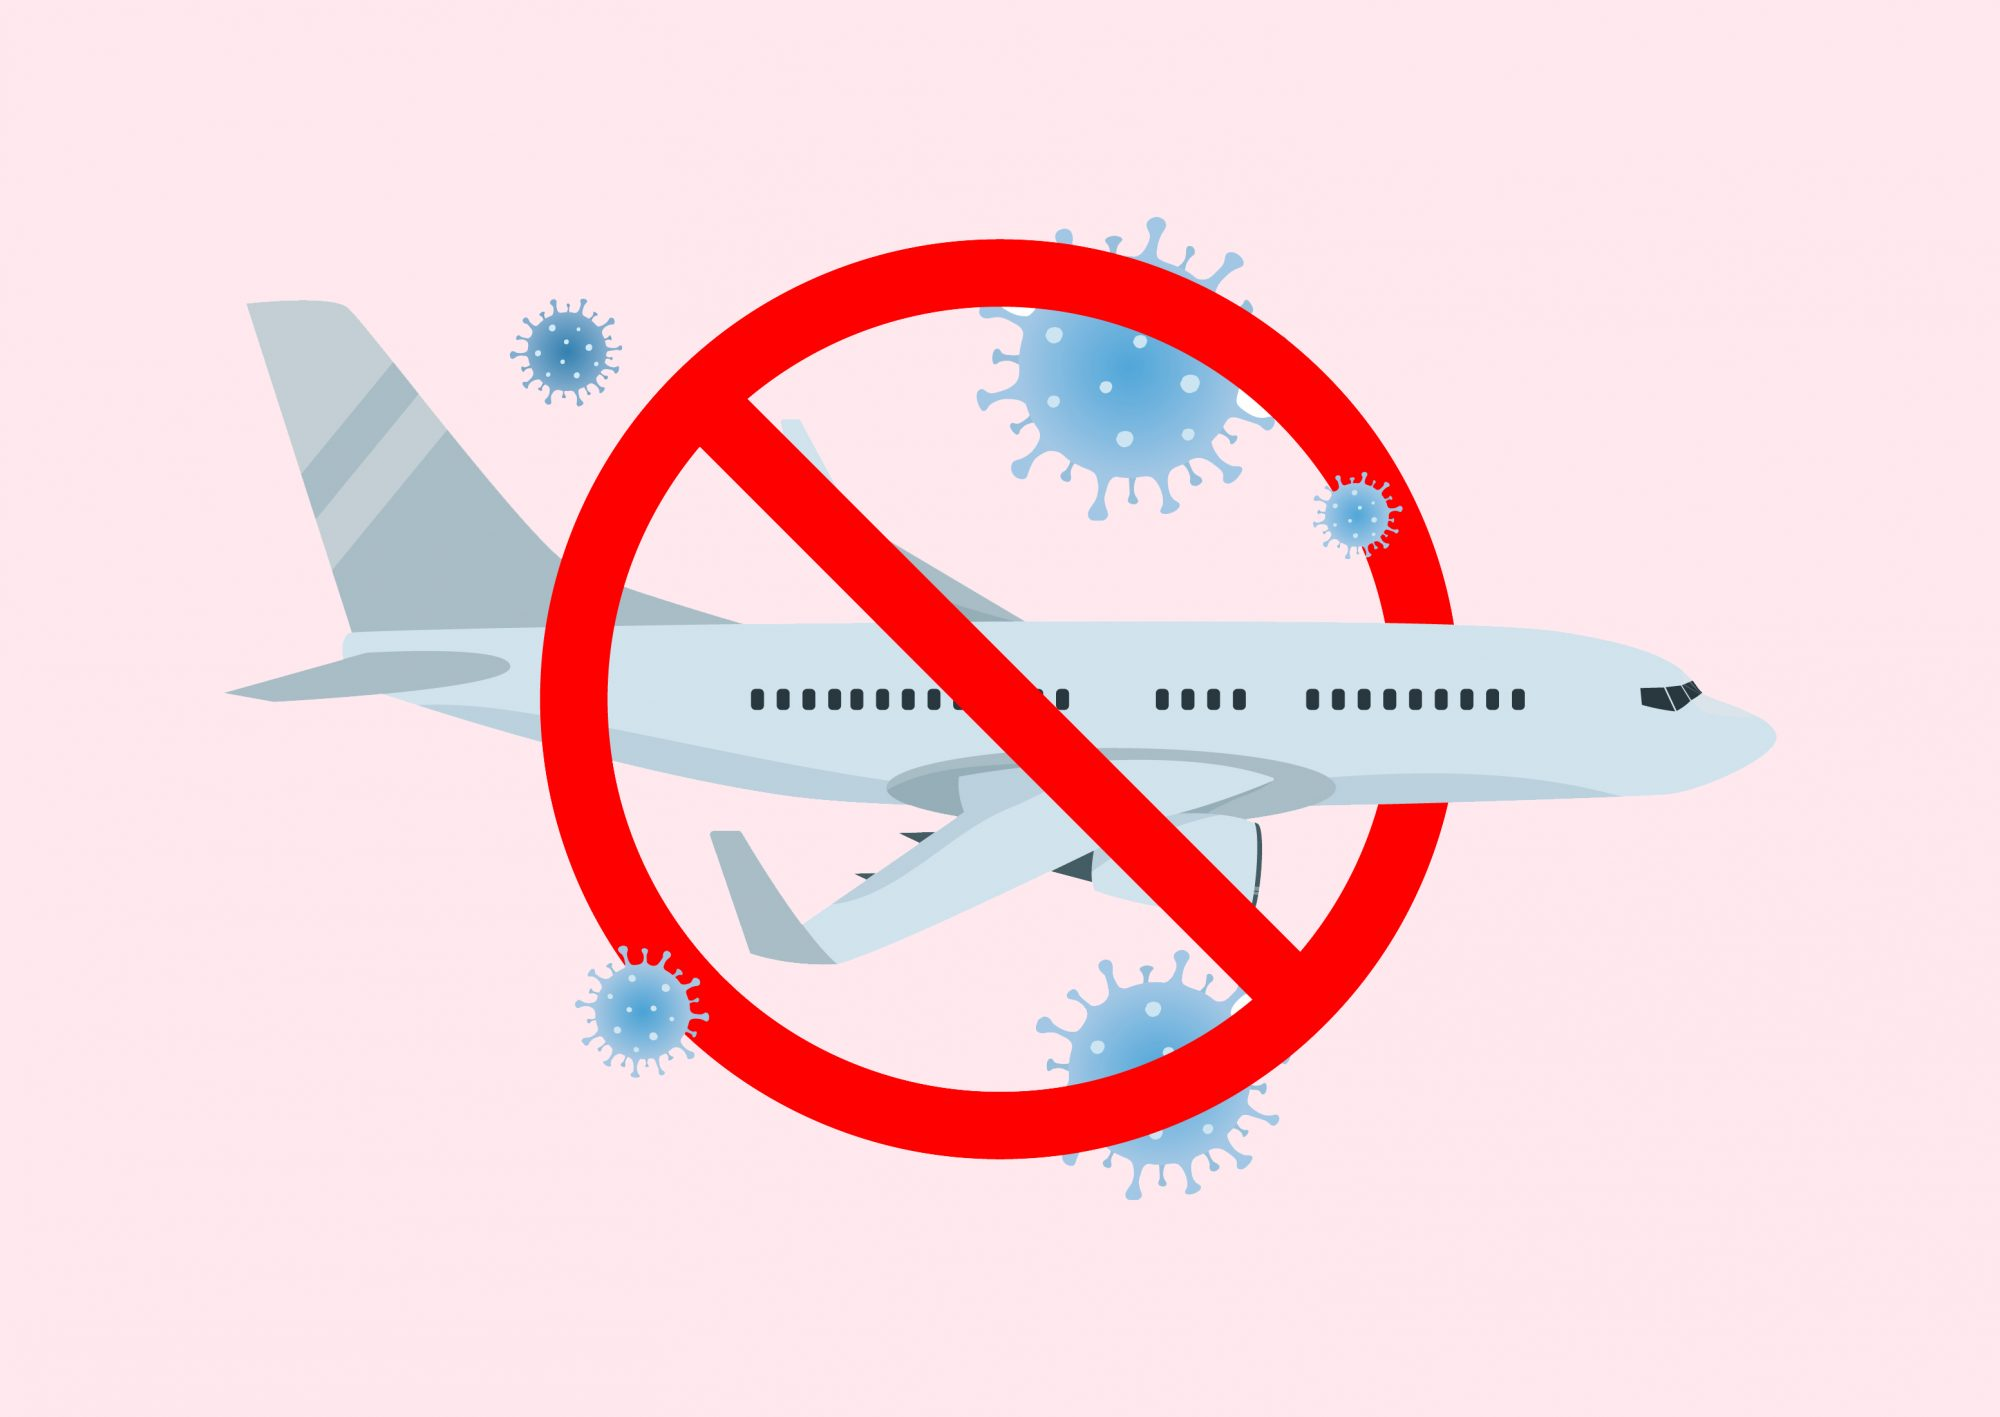 canceled flight: airlines must offer a refund during pandemic, DOT says